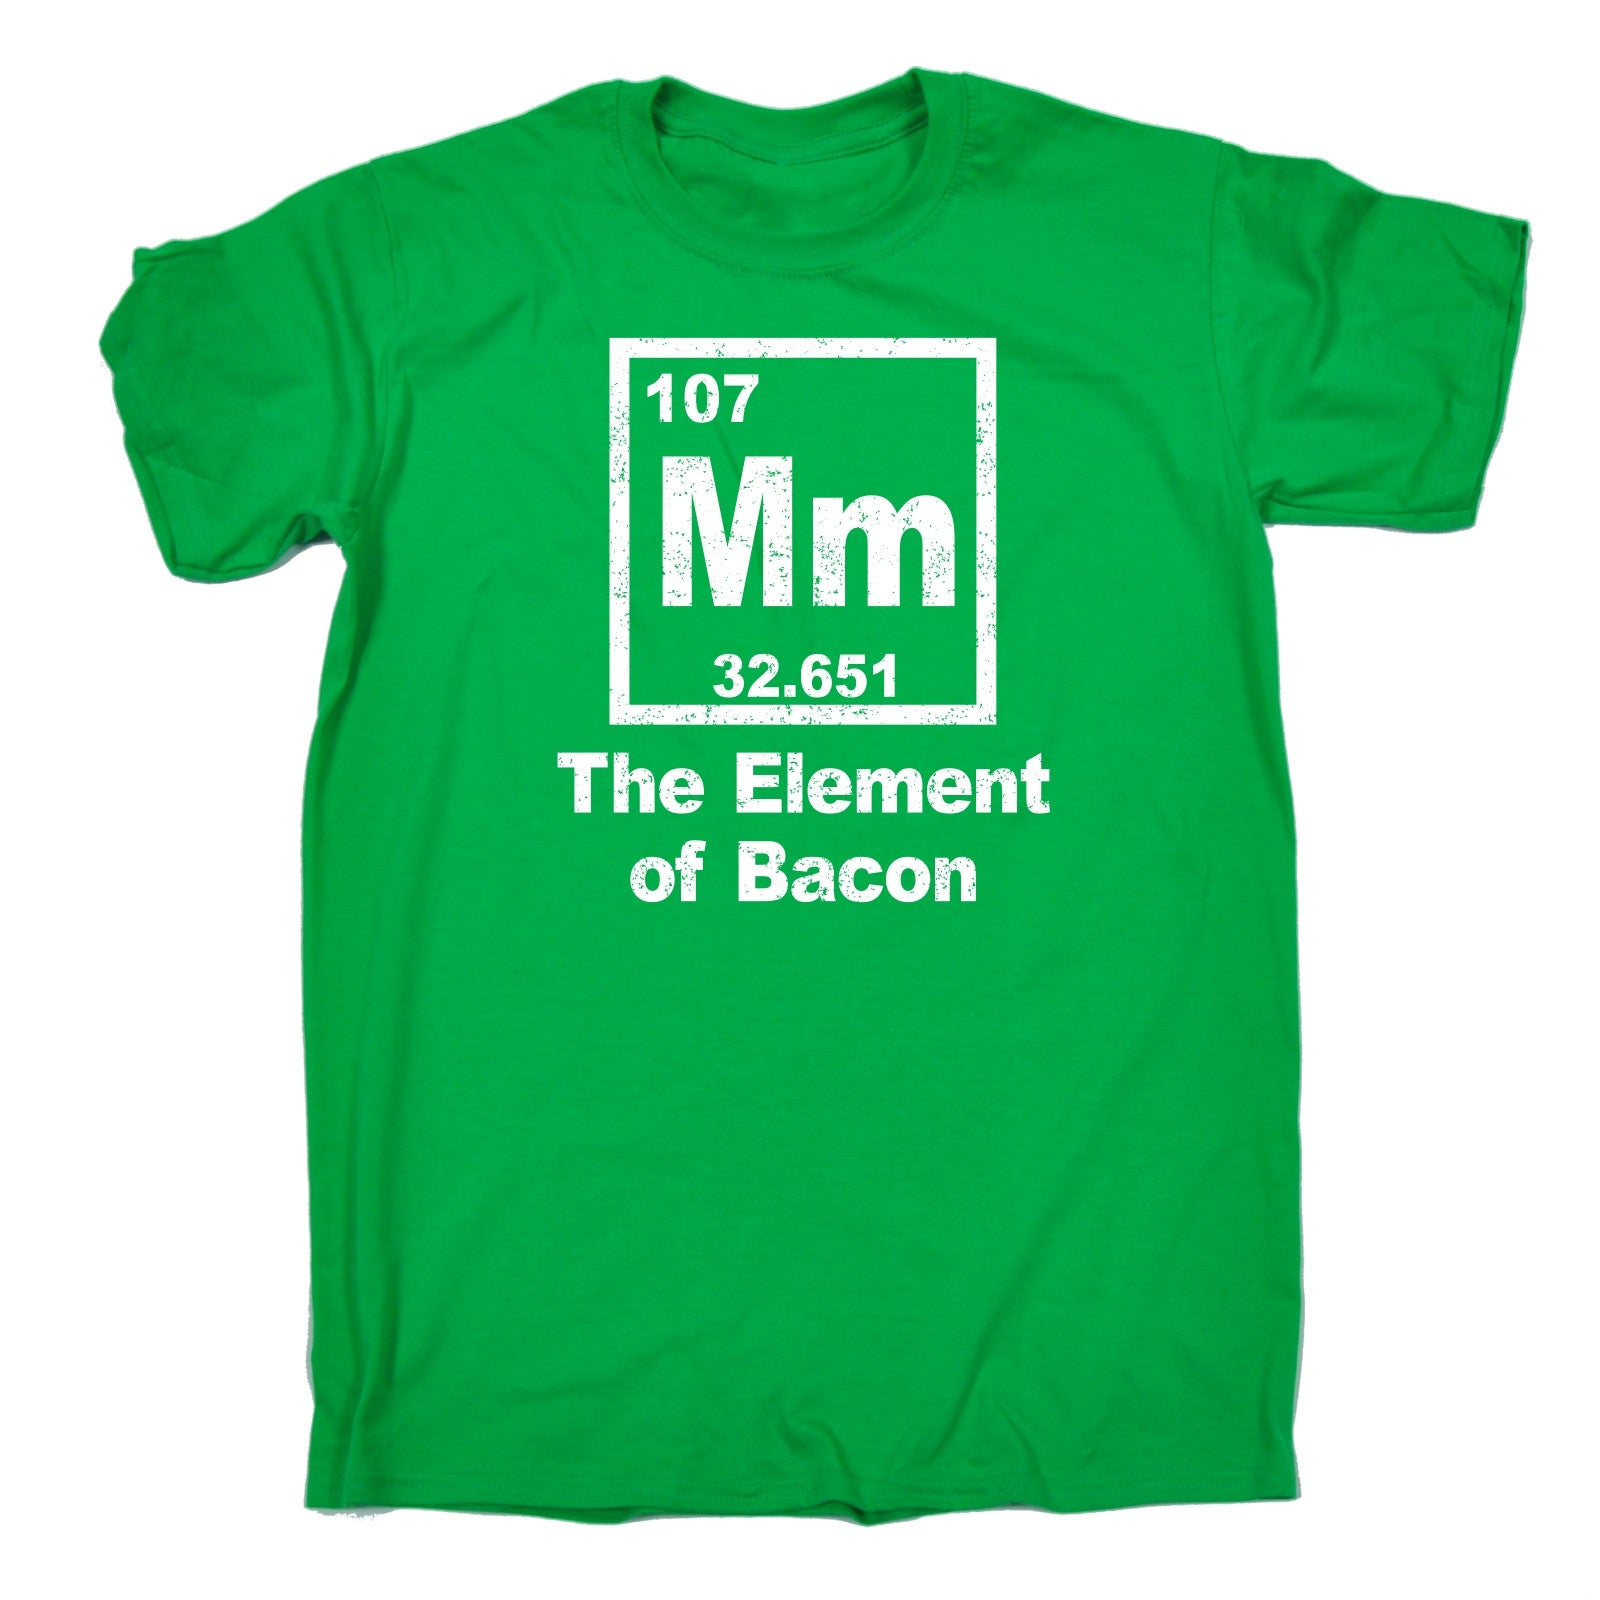 Mm the element of bacon periodic table t shirt chef butcher pork mm the element of bacon periodic table t gamestrikefo Gallery